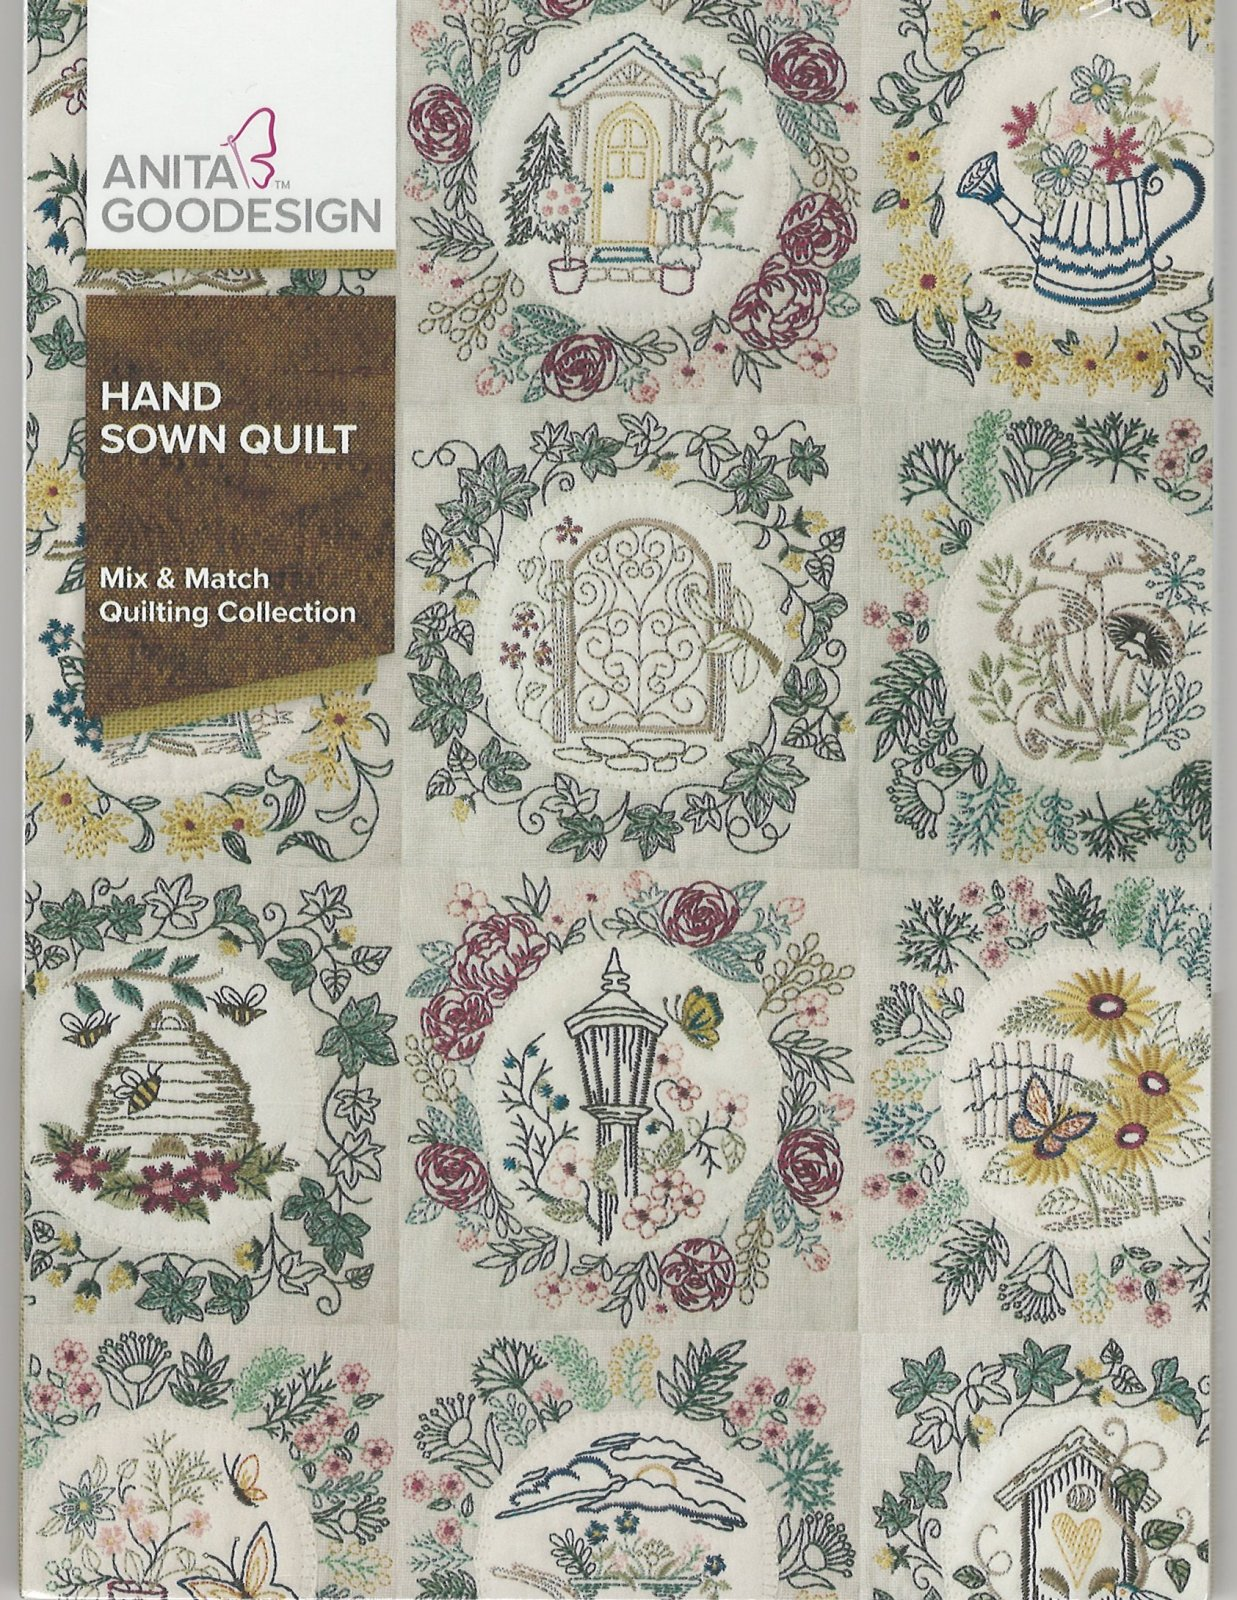 Anita Goodesign Machine Embroidery Designs Hand Sown Quilt Full Collection CD